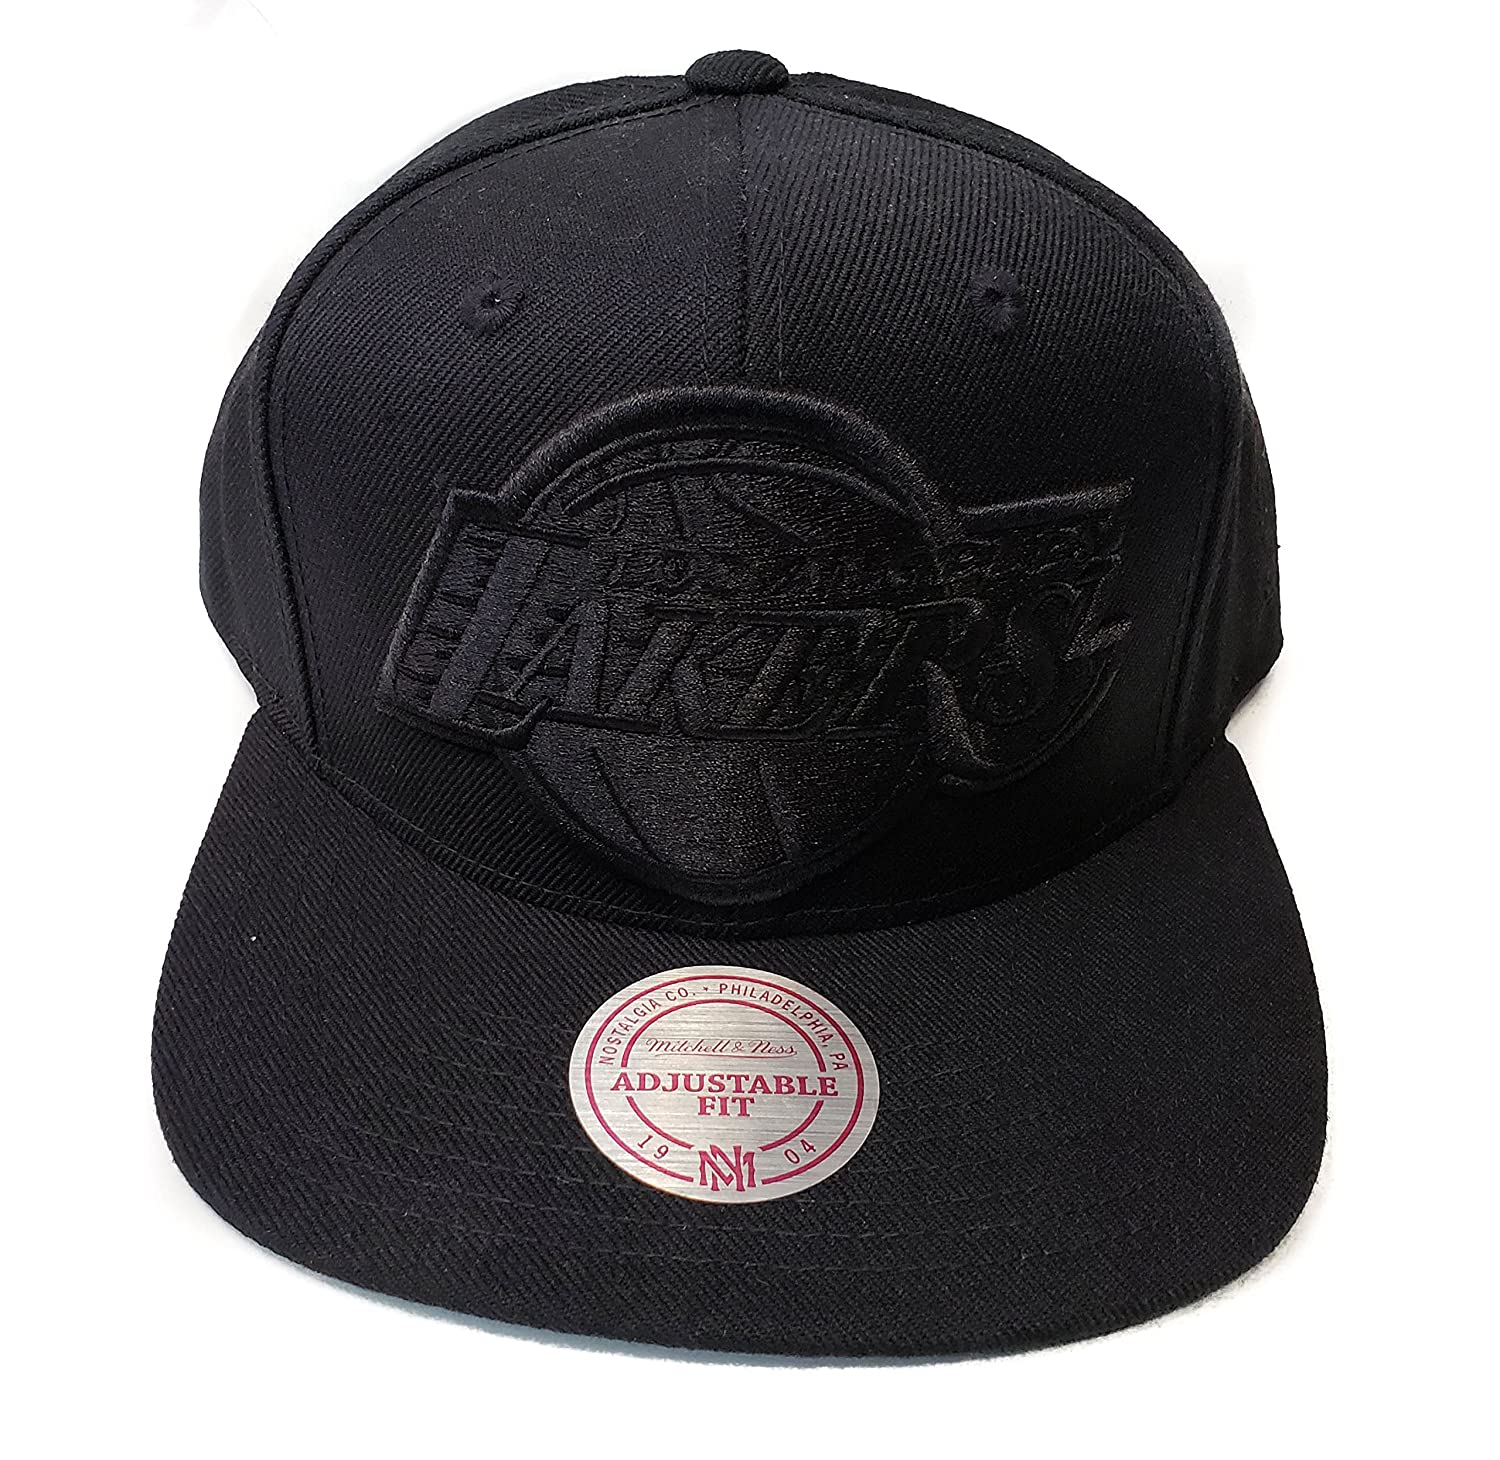 f42020d5 Amazon.com : Mitchell & Ness Los Angeles Lakers Classic Solid Wool Black &  Black Logo Vintage Adjustable Snapback Hat NBA : Sports & Outdoors